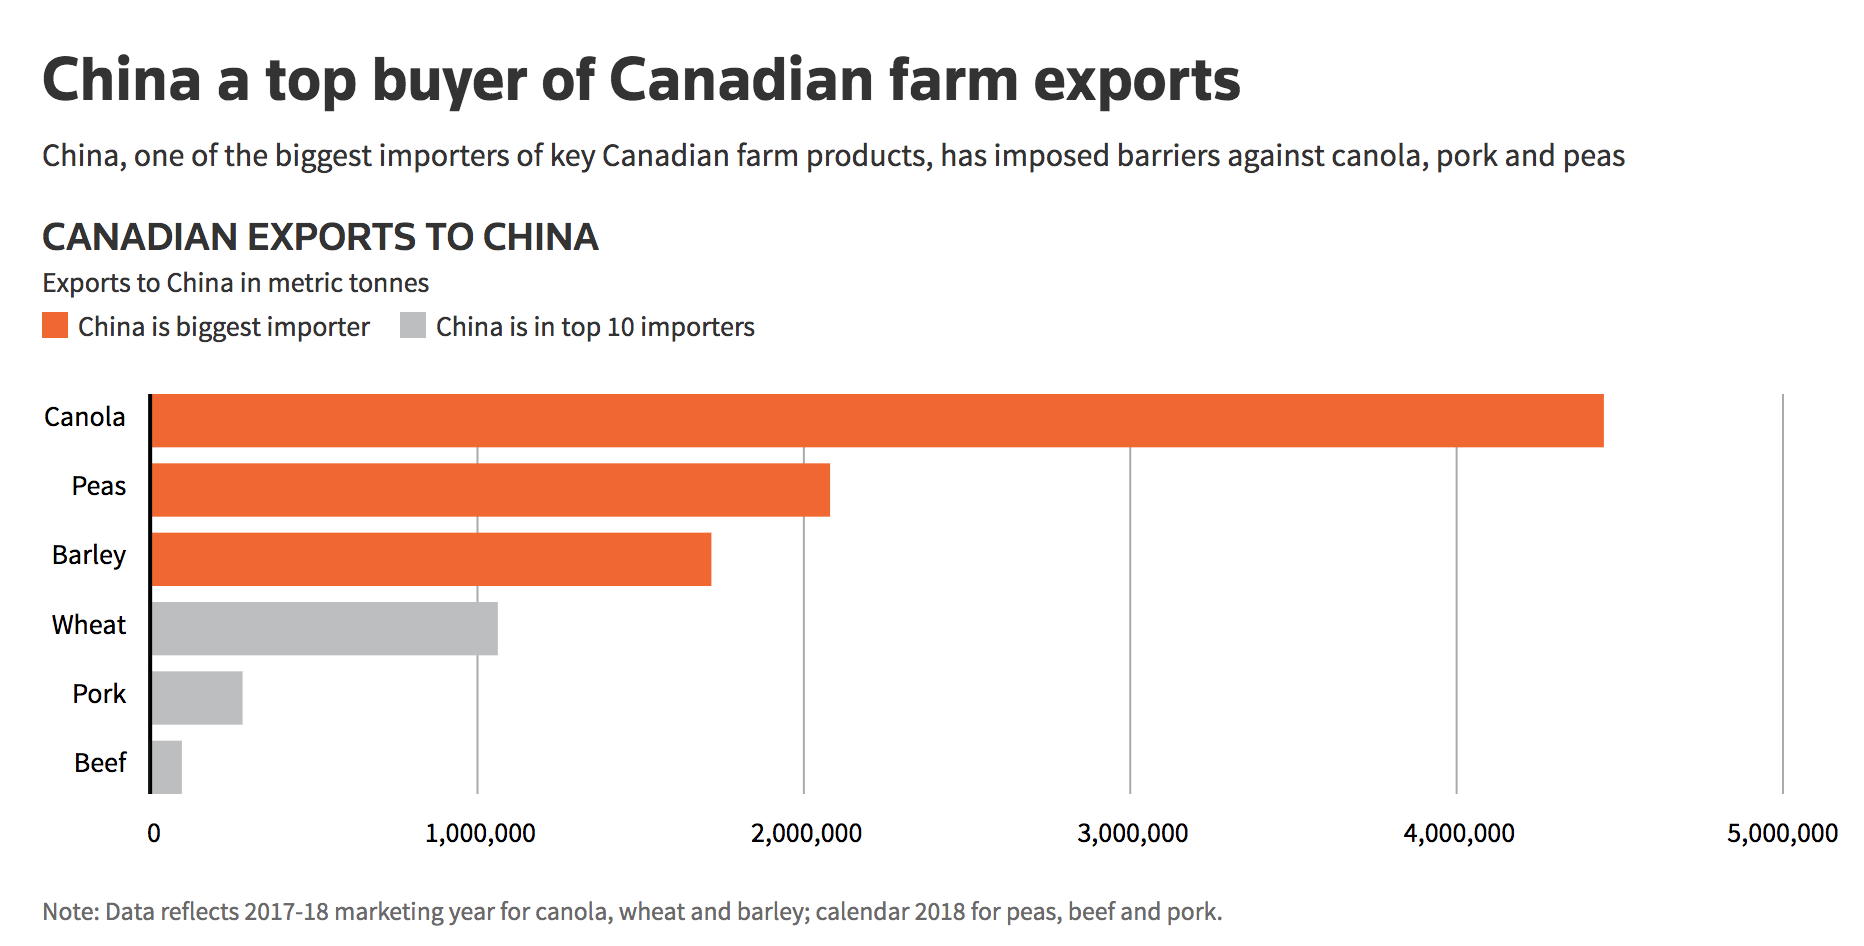 China a top buyer of Canadian farm exports